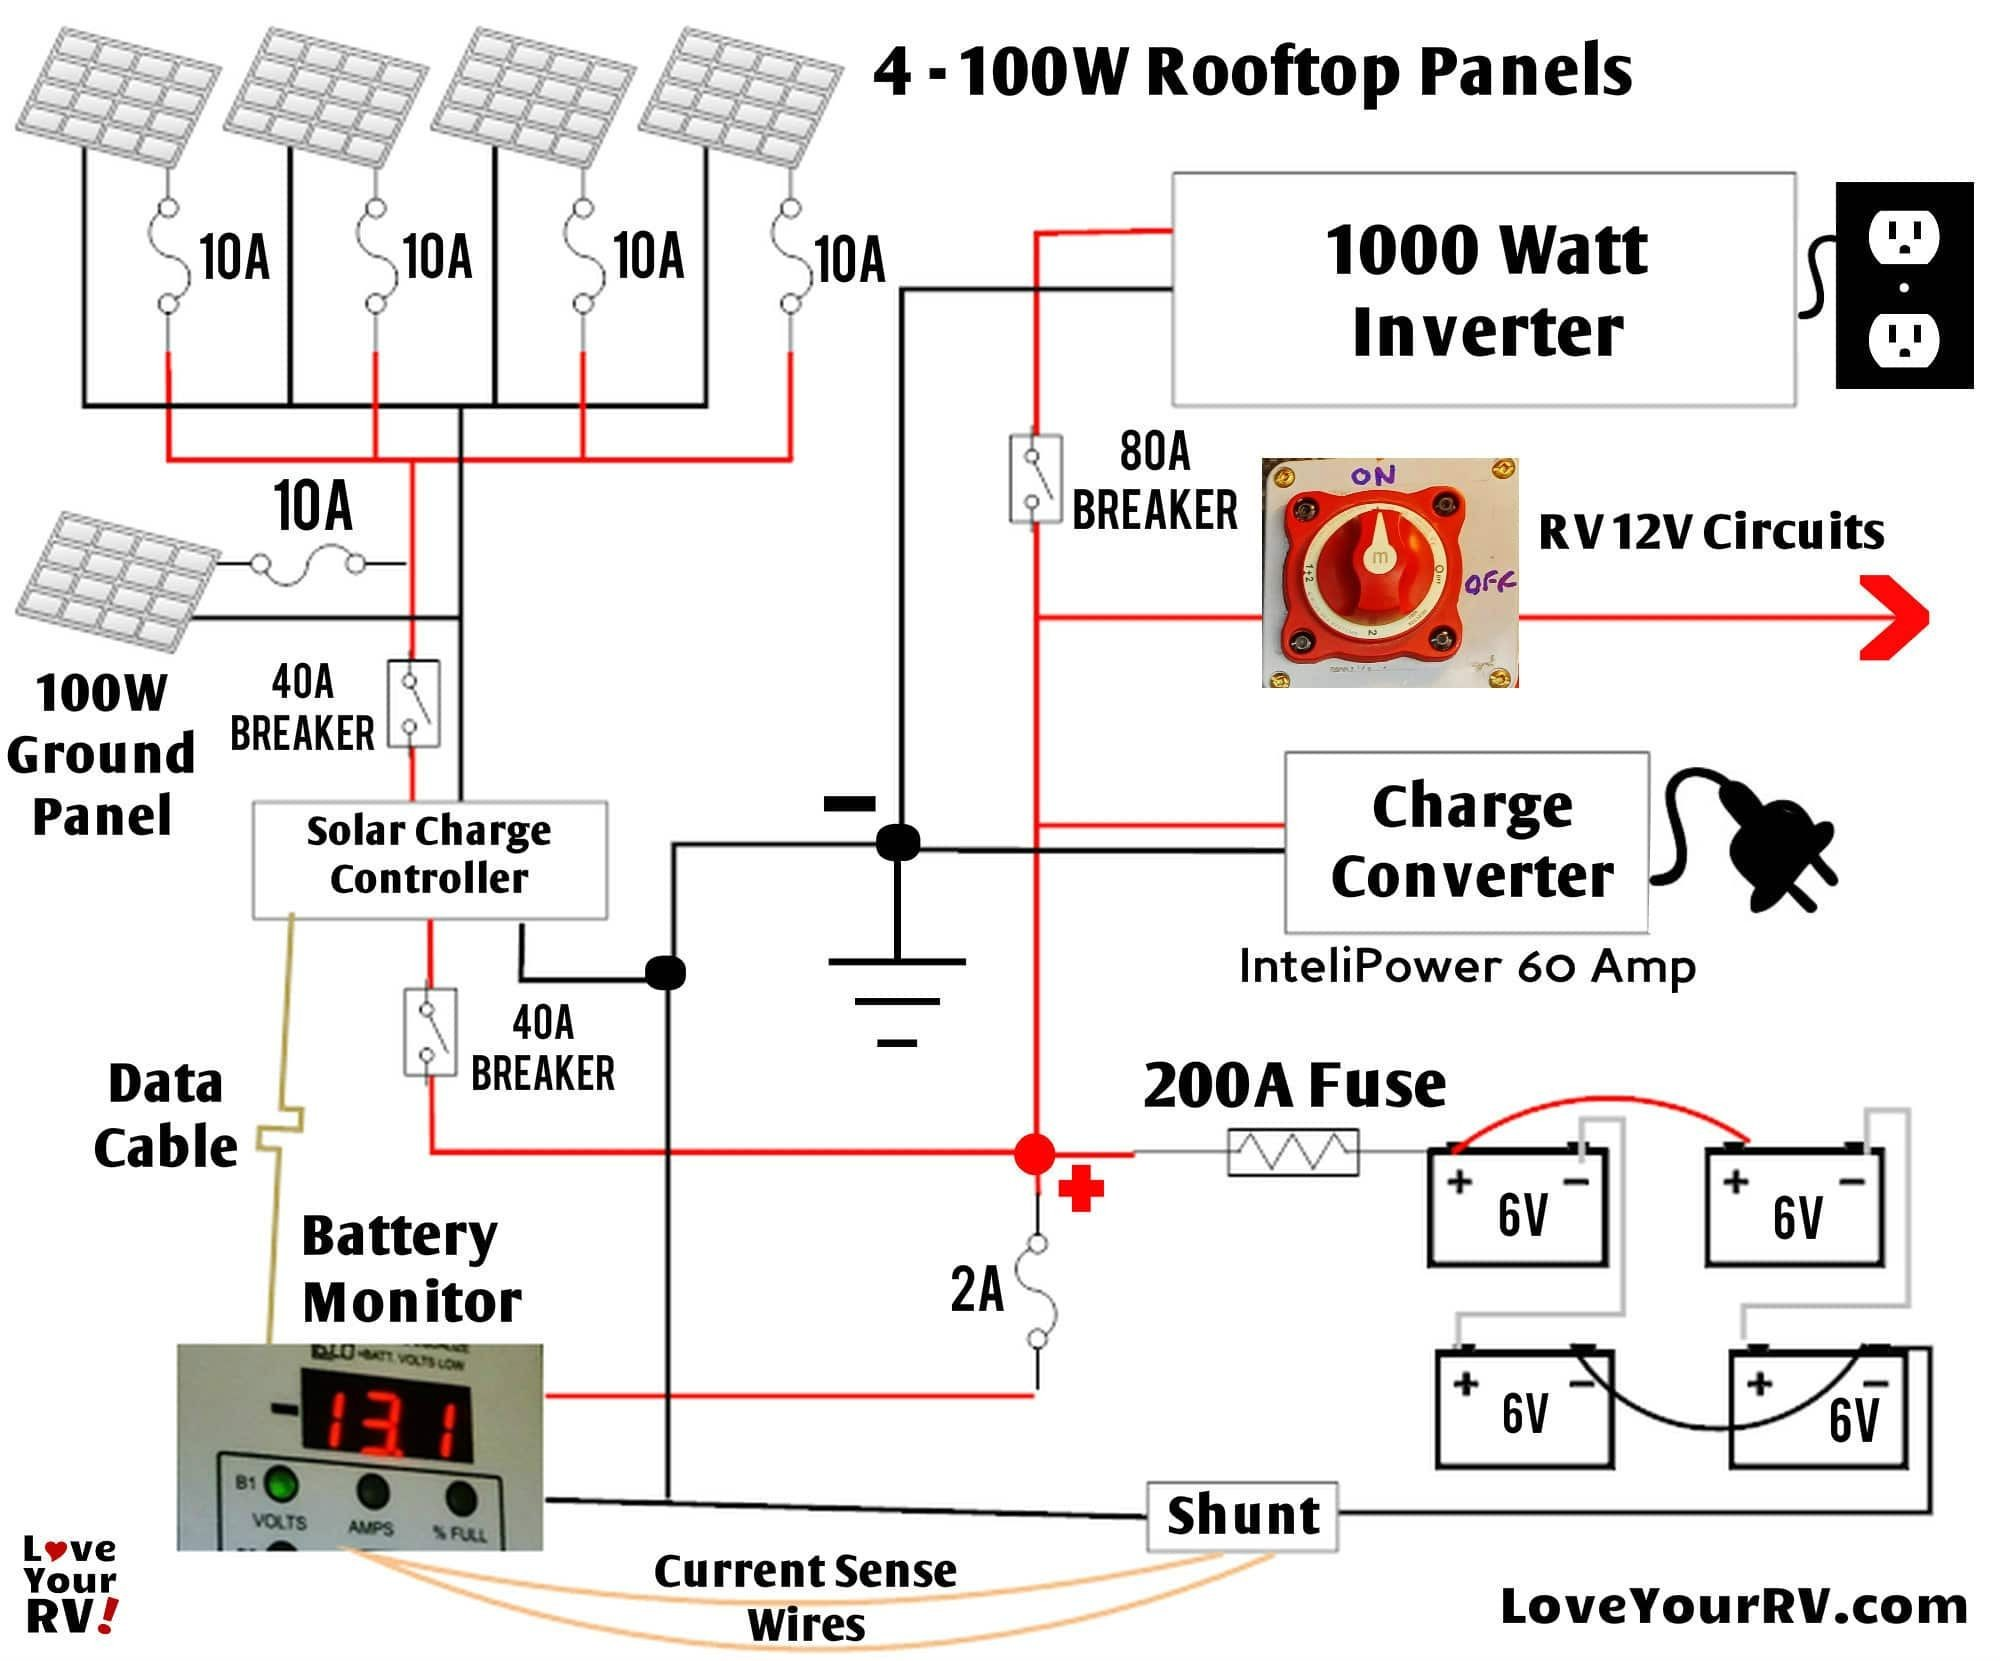 Diy solar Panel Wiring Diagram Detailed Look at Our Diy Rv Boondocking Power System